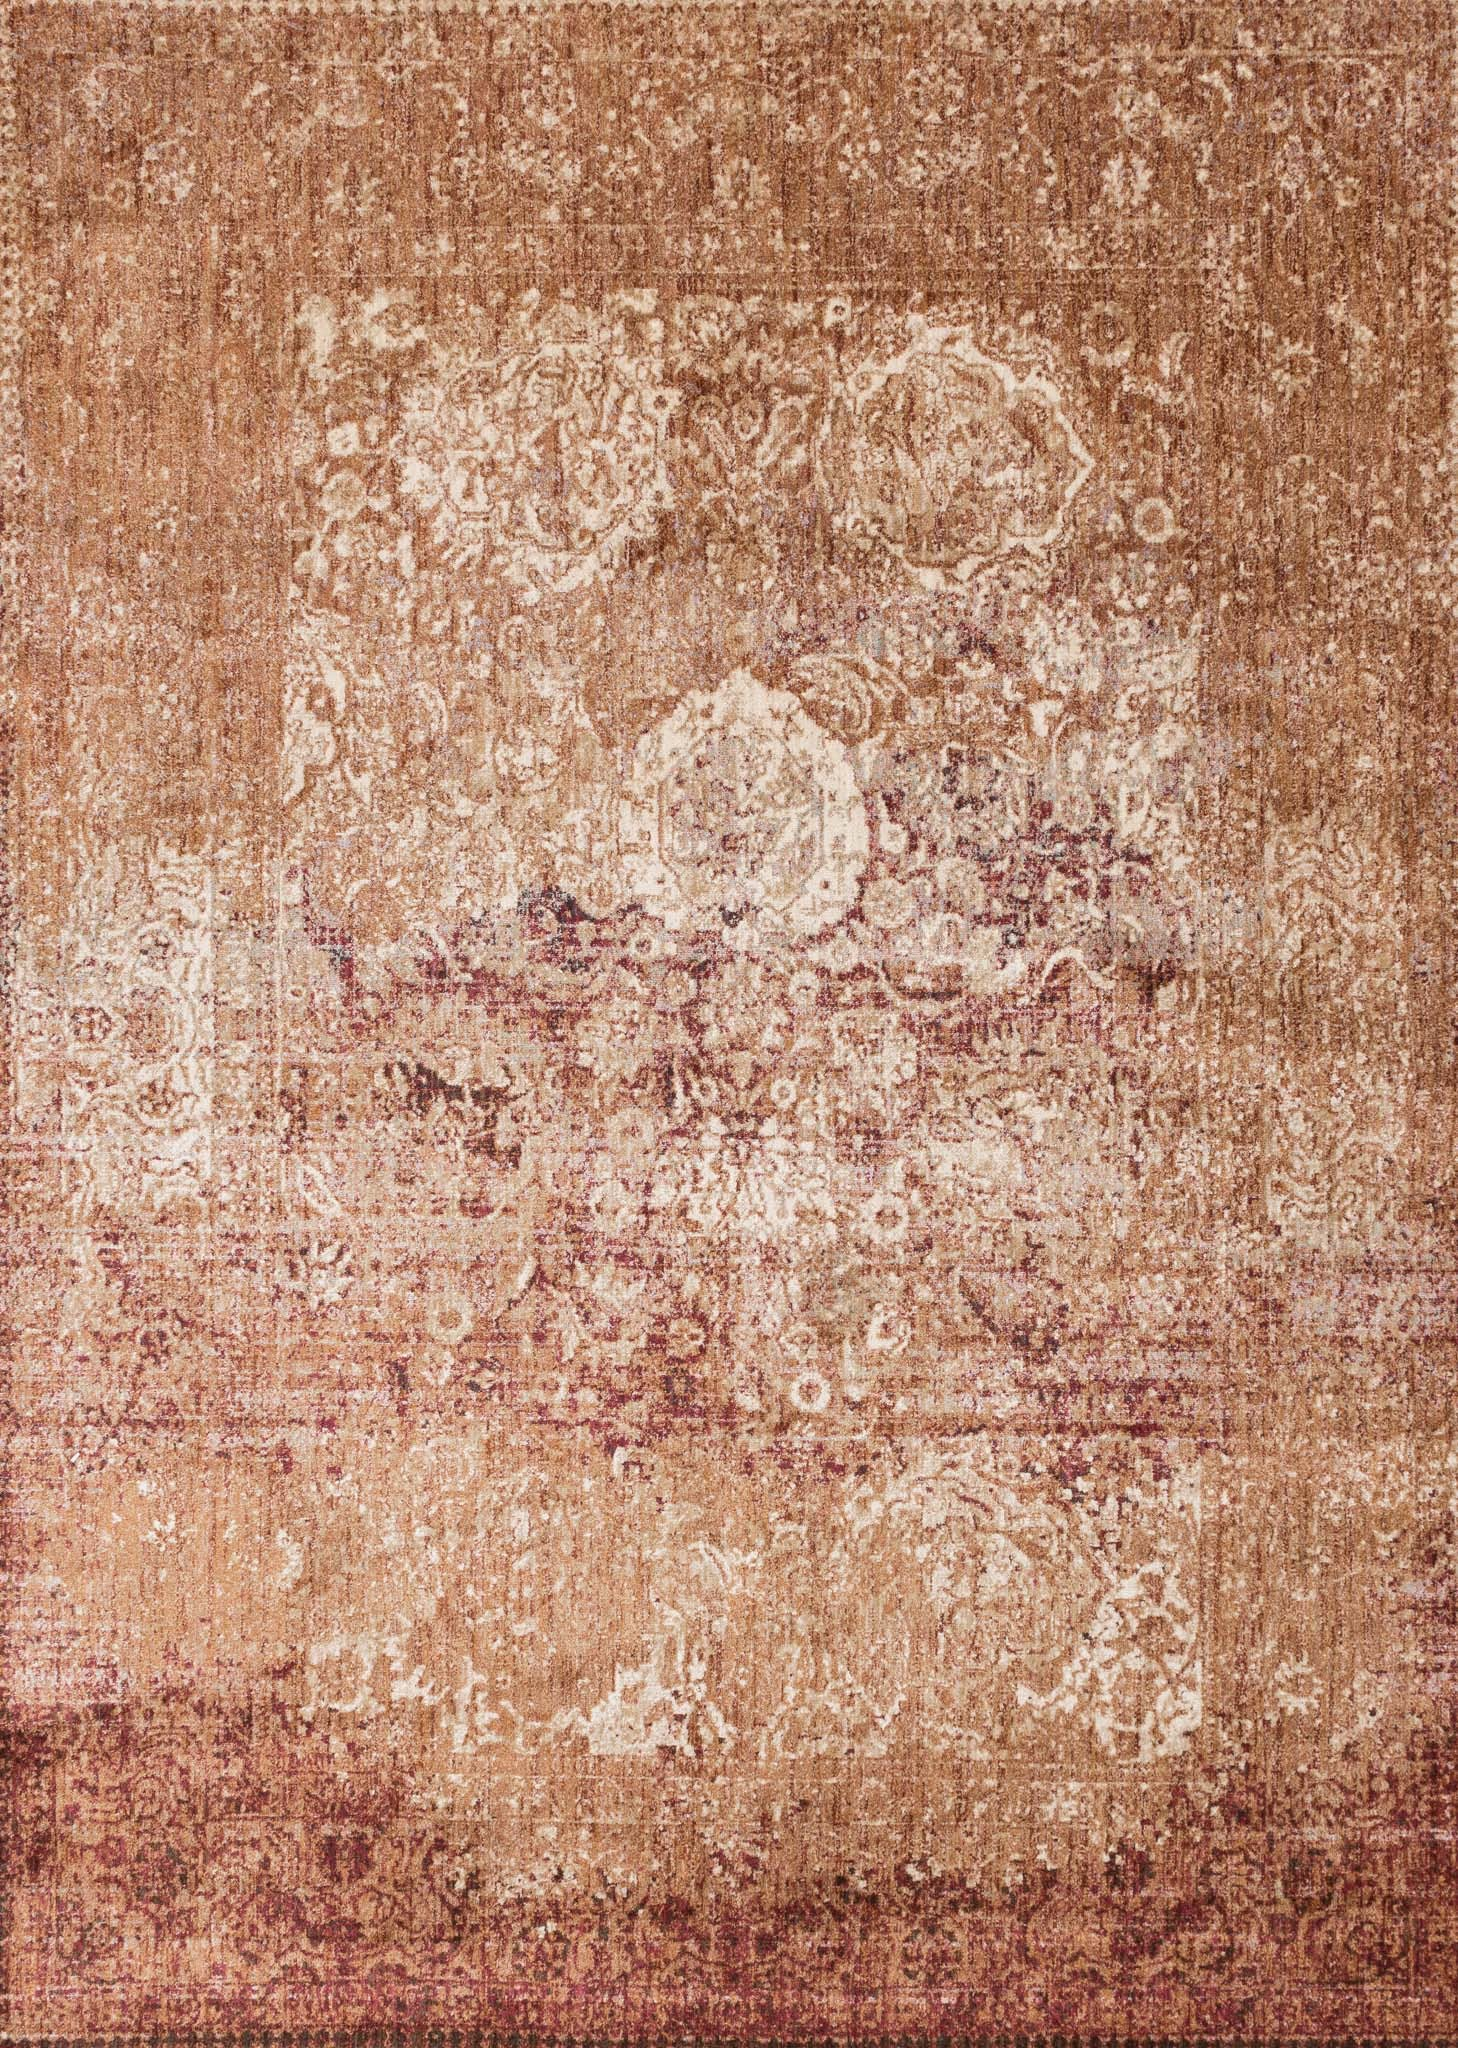 8 Round Rugs Tagged Quot Colors Golds Quot Incredible Rugs